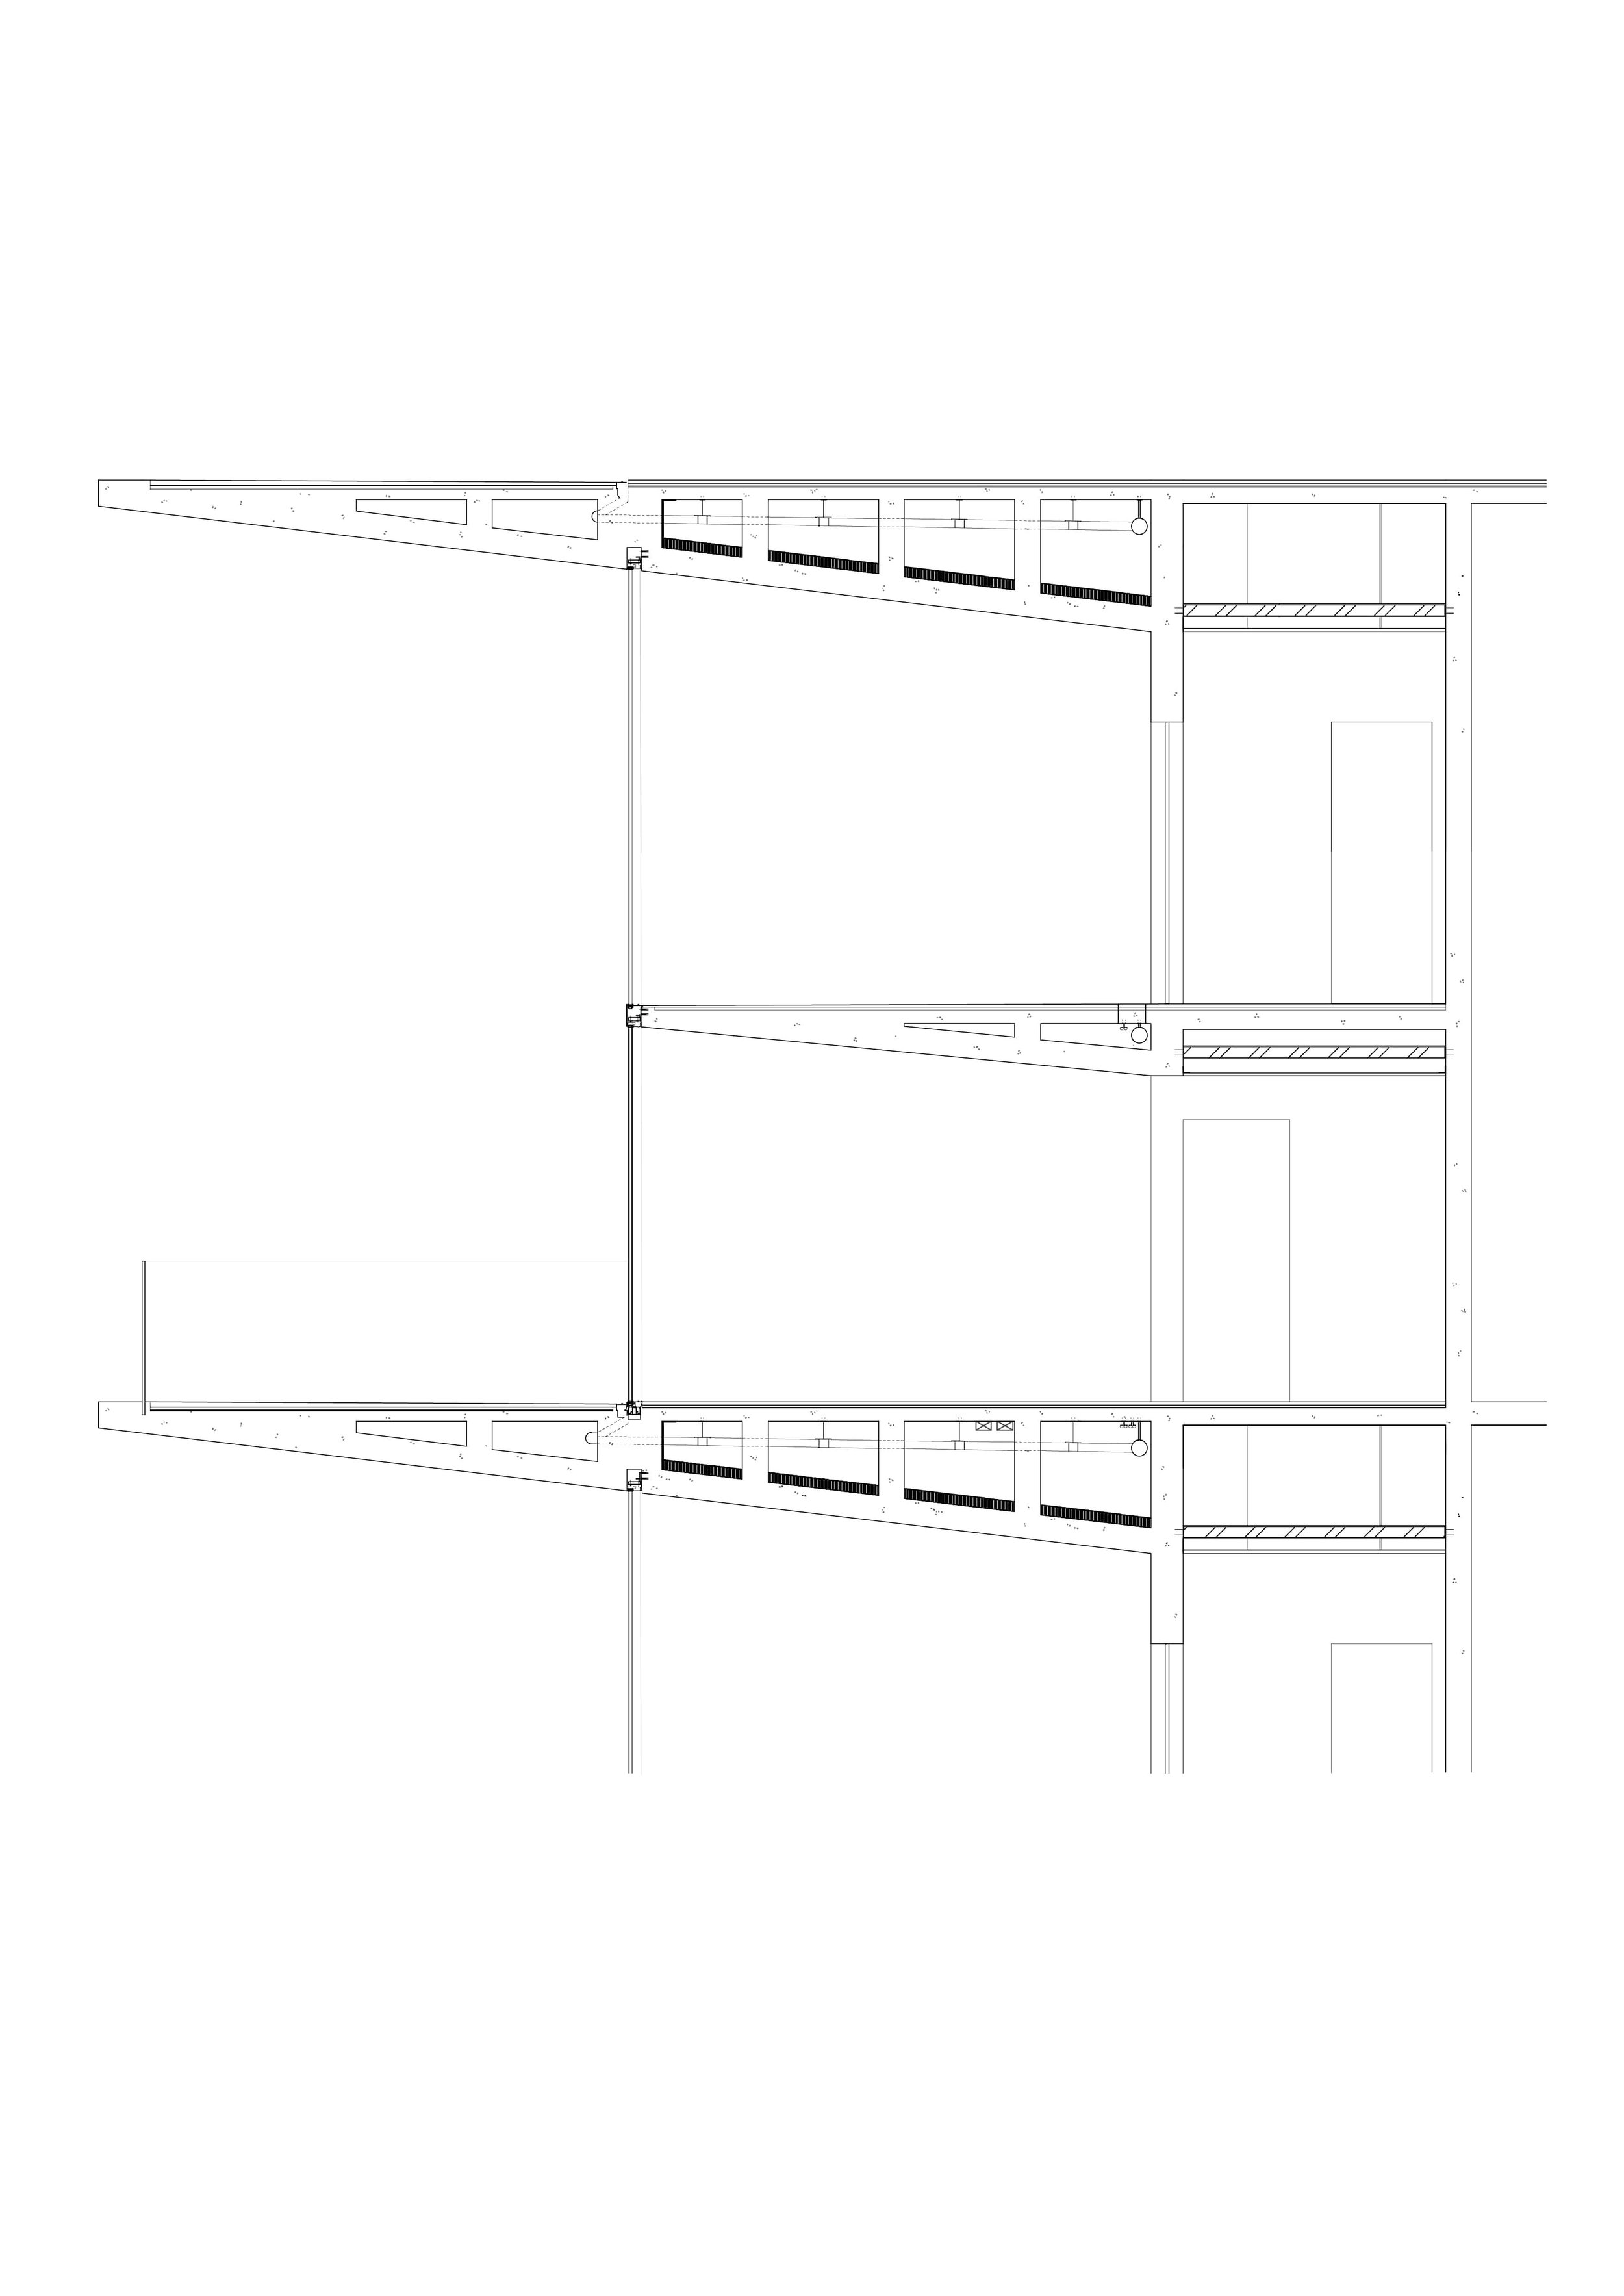 Structural section - This sections shows the internal structure of the cantilevered floor slaps. It was given the green light as a feasible building project by a civil engineer from Arup.